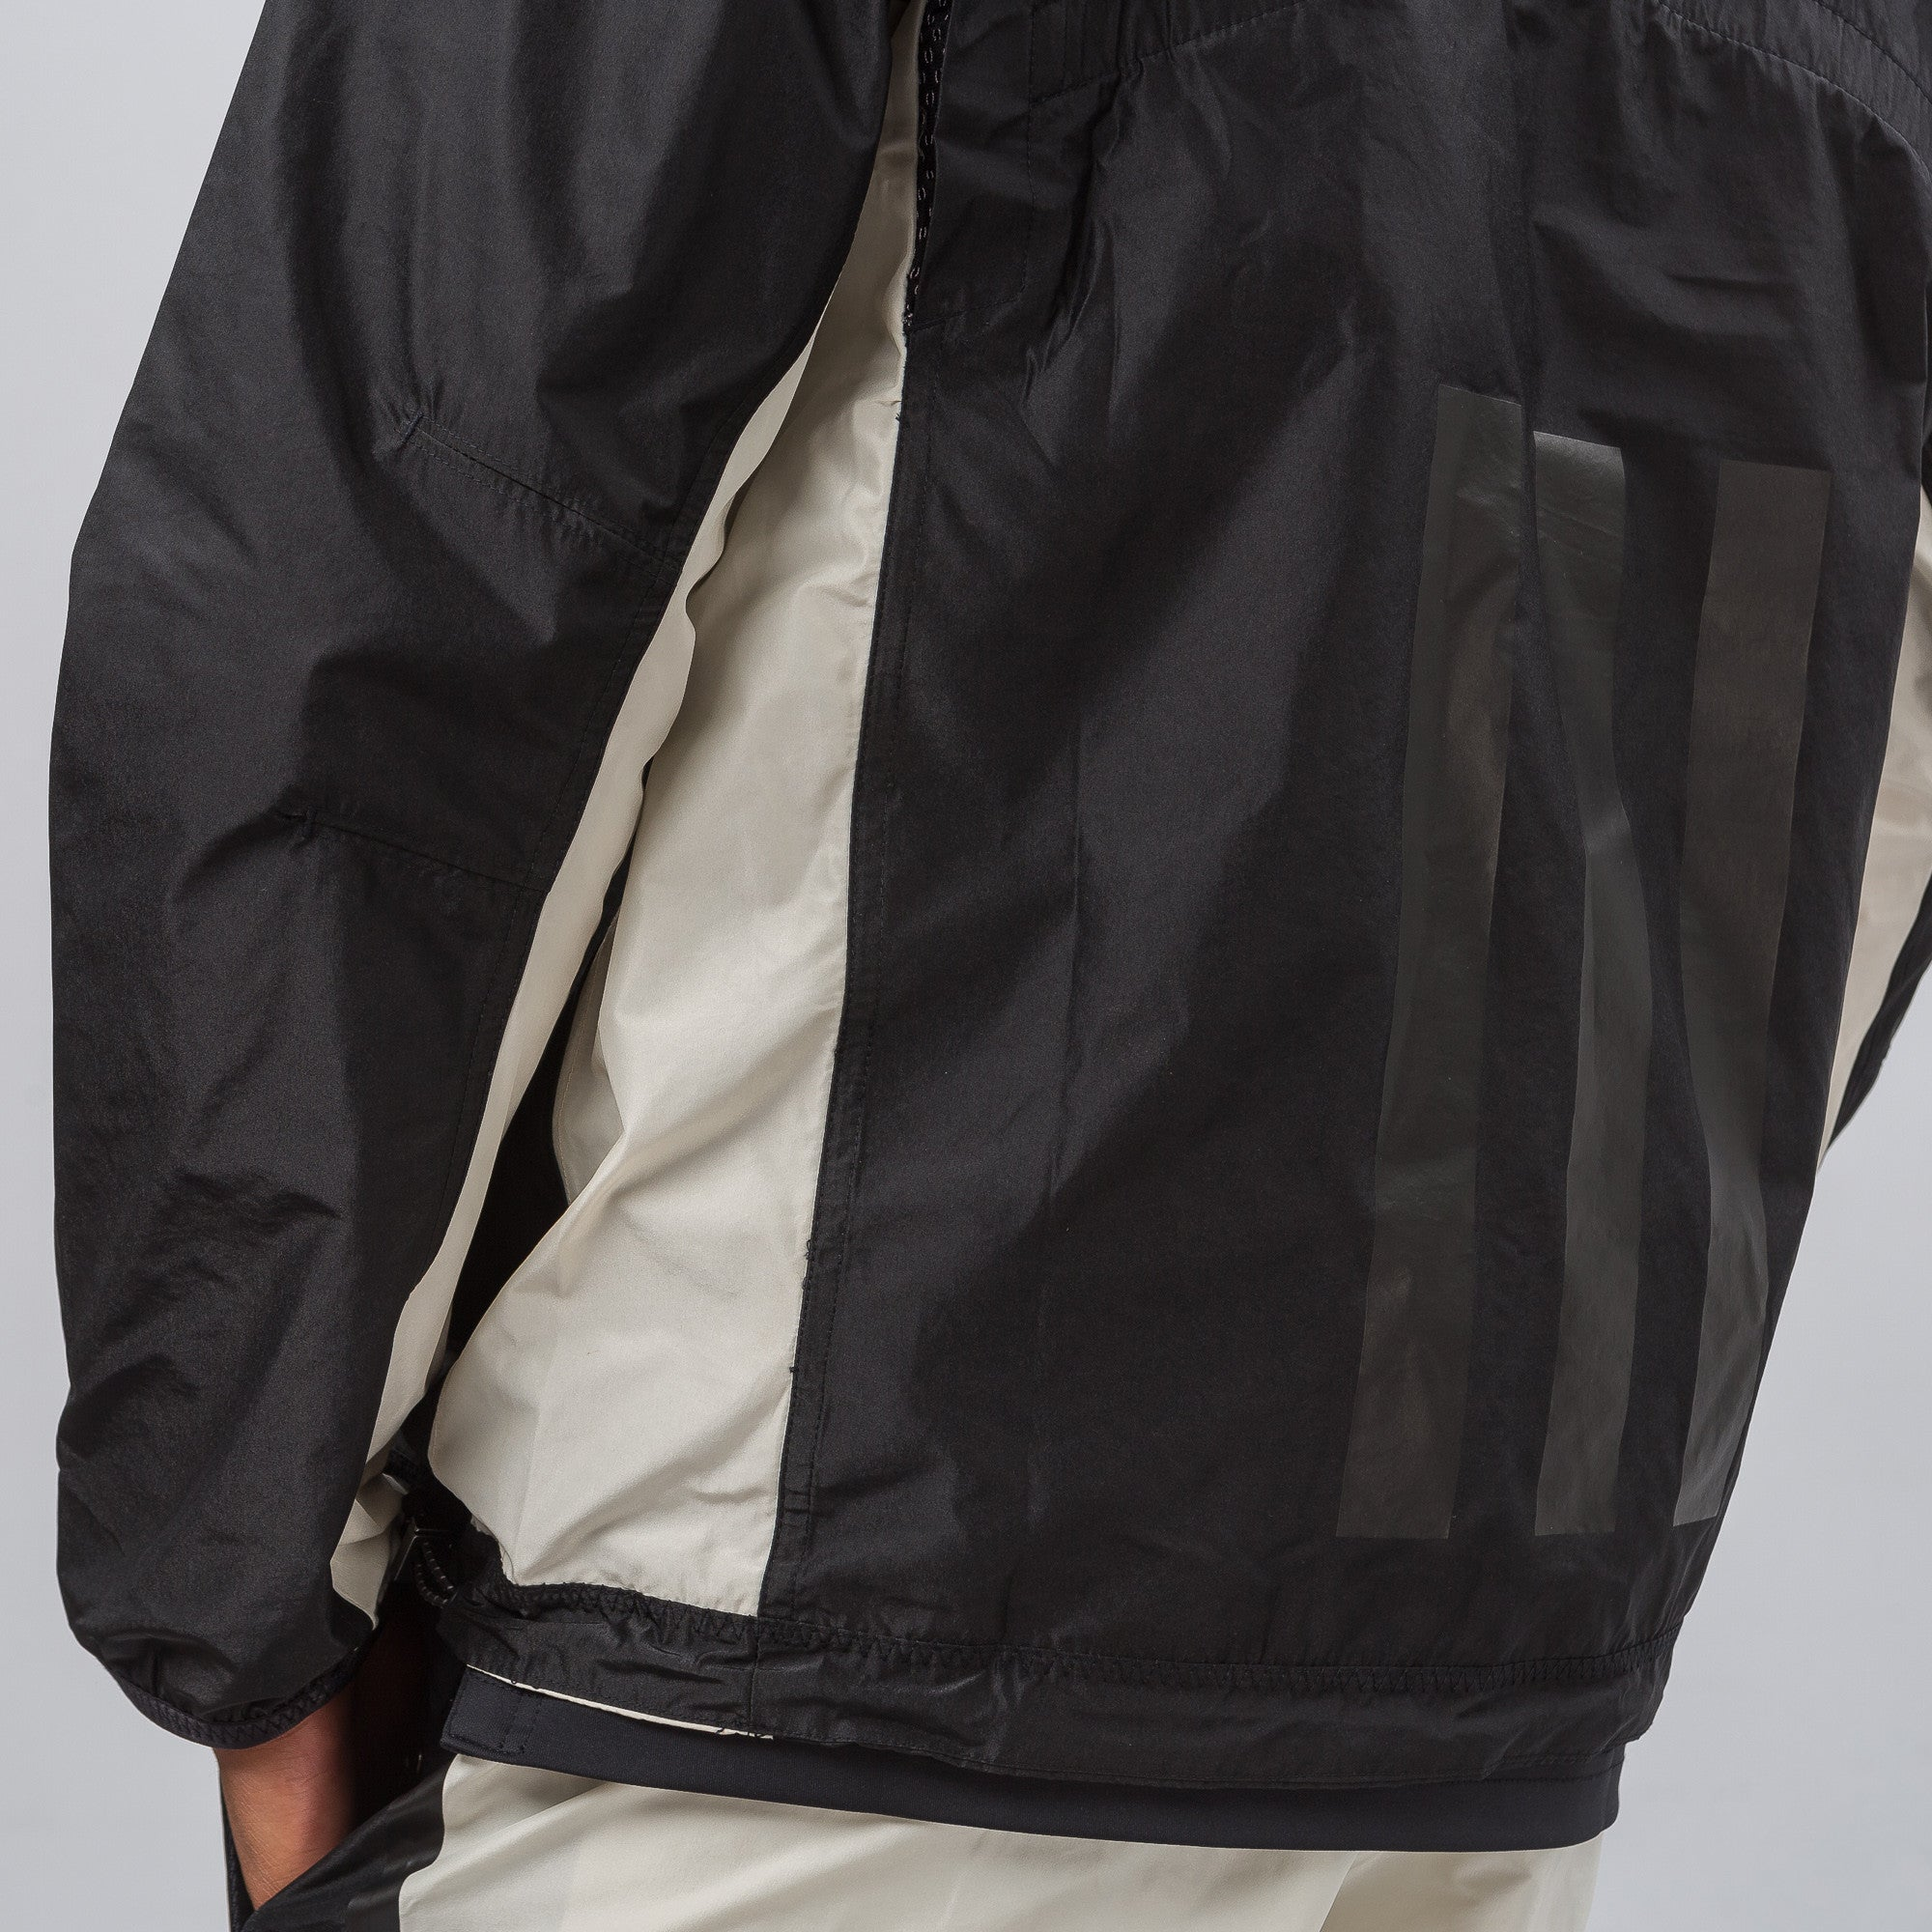 Day One Carbon Windbreaker